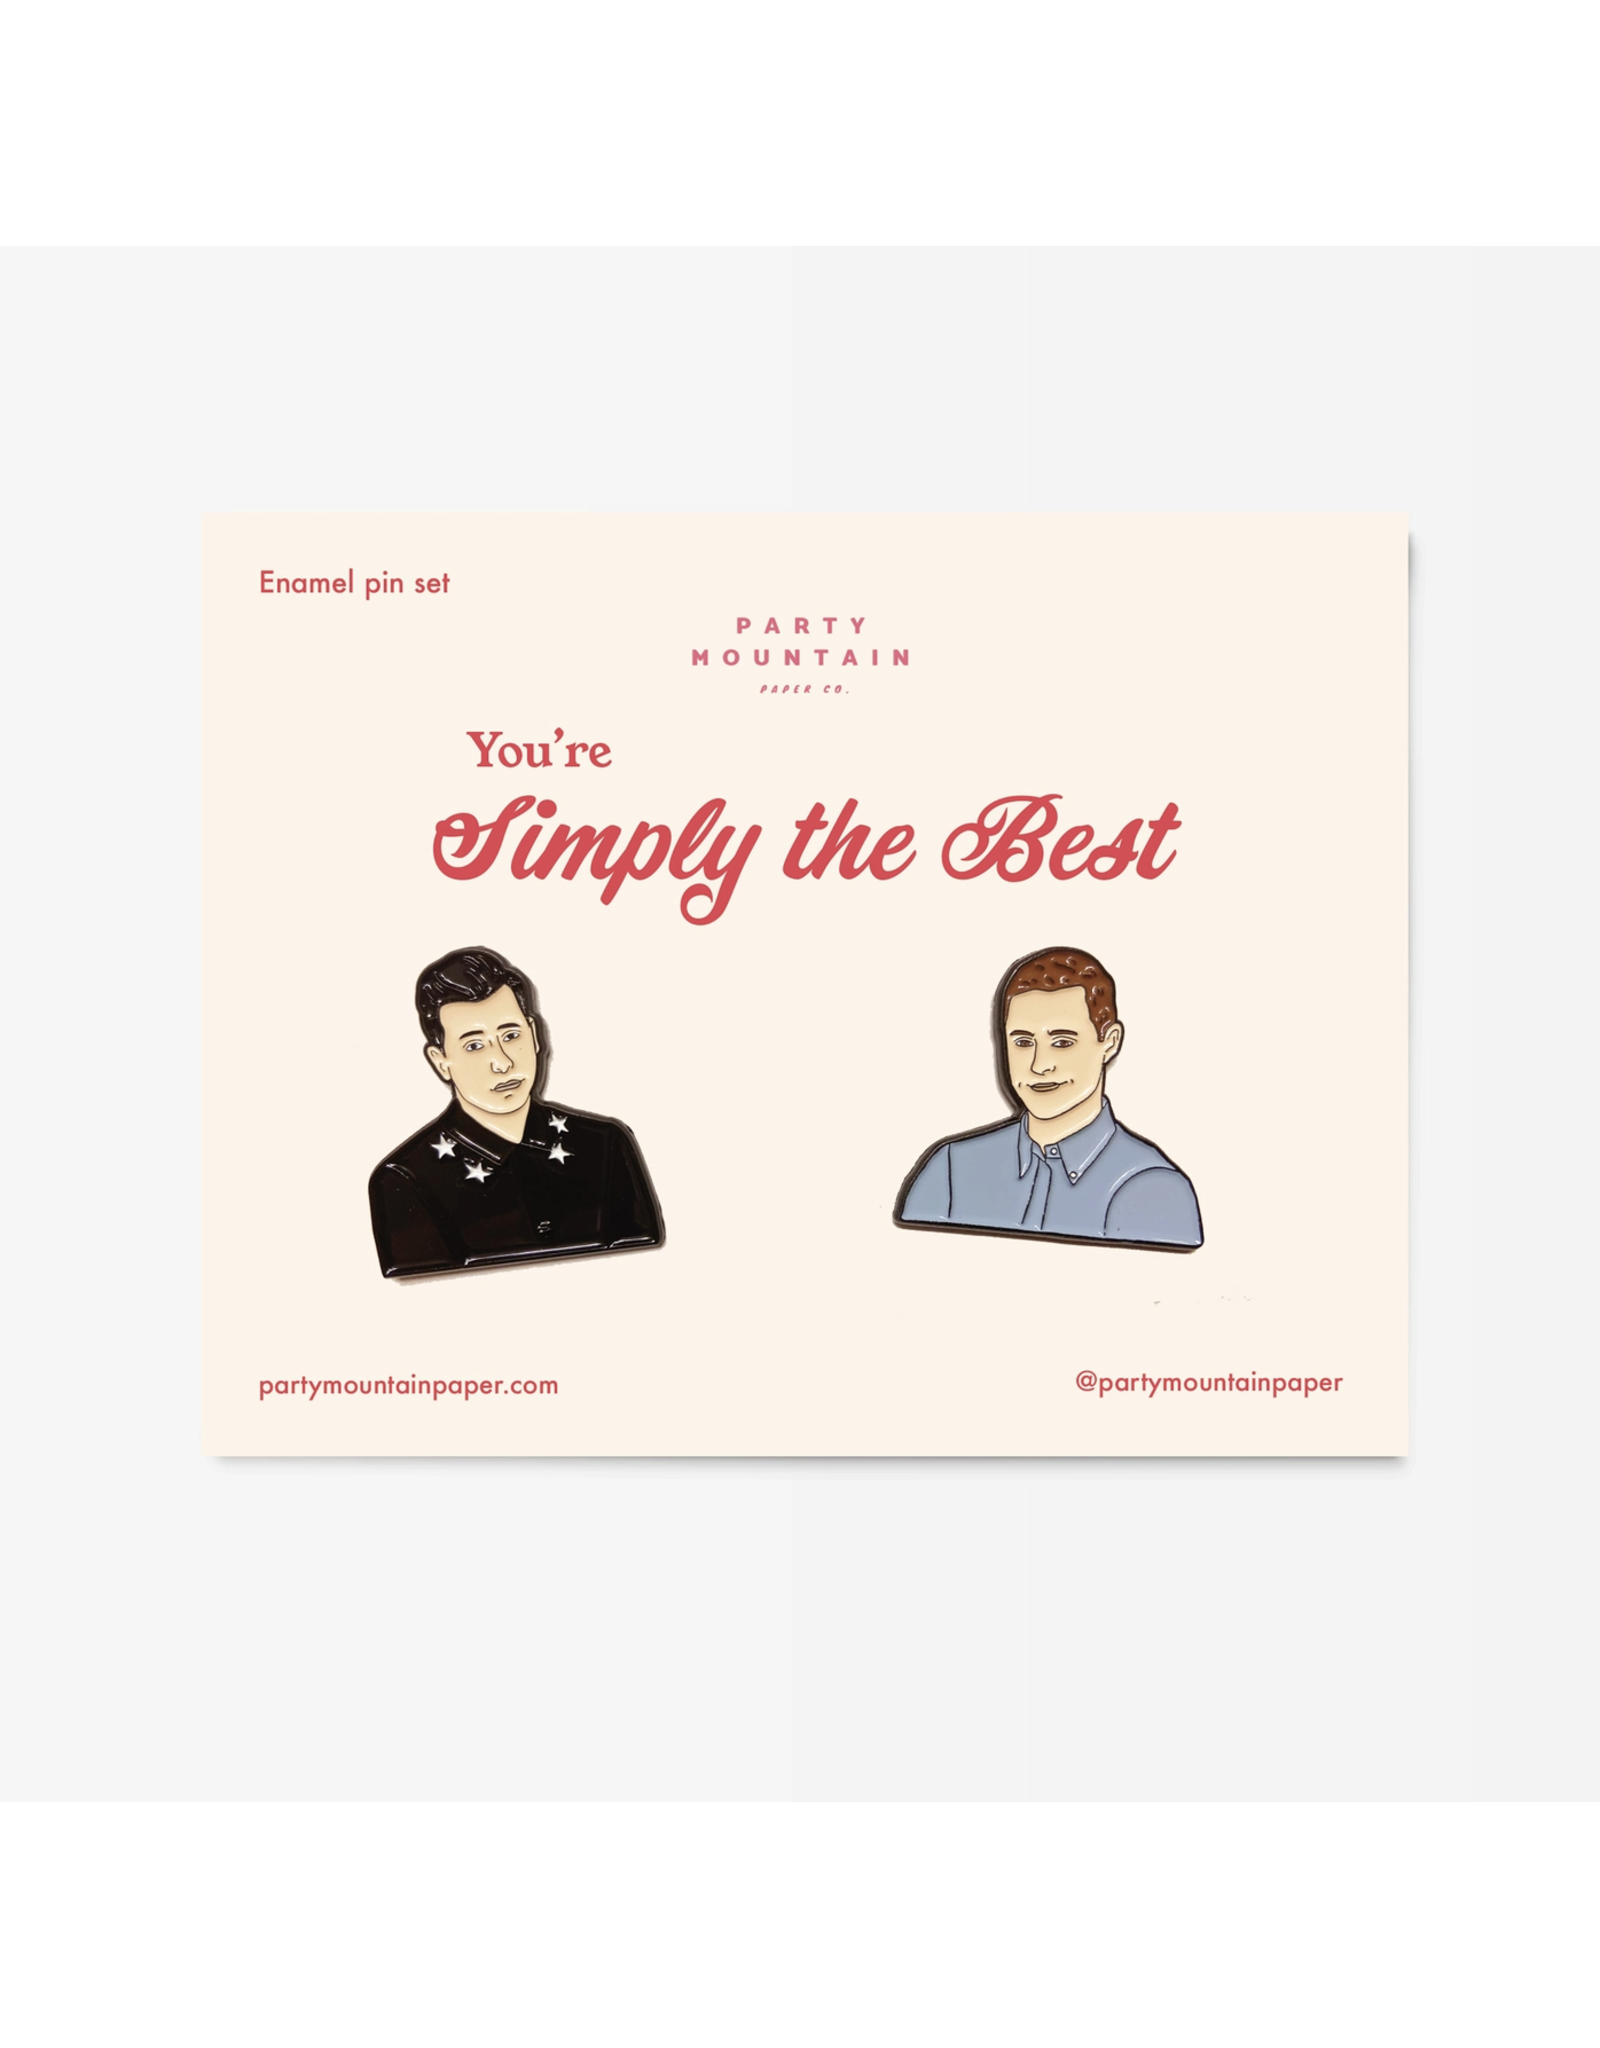 Simply the Best Pin Set